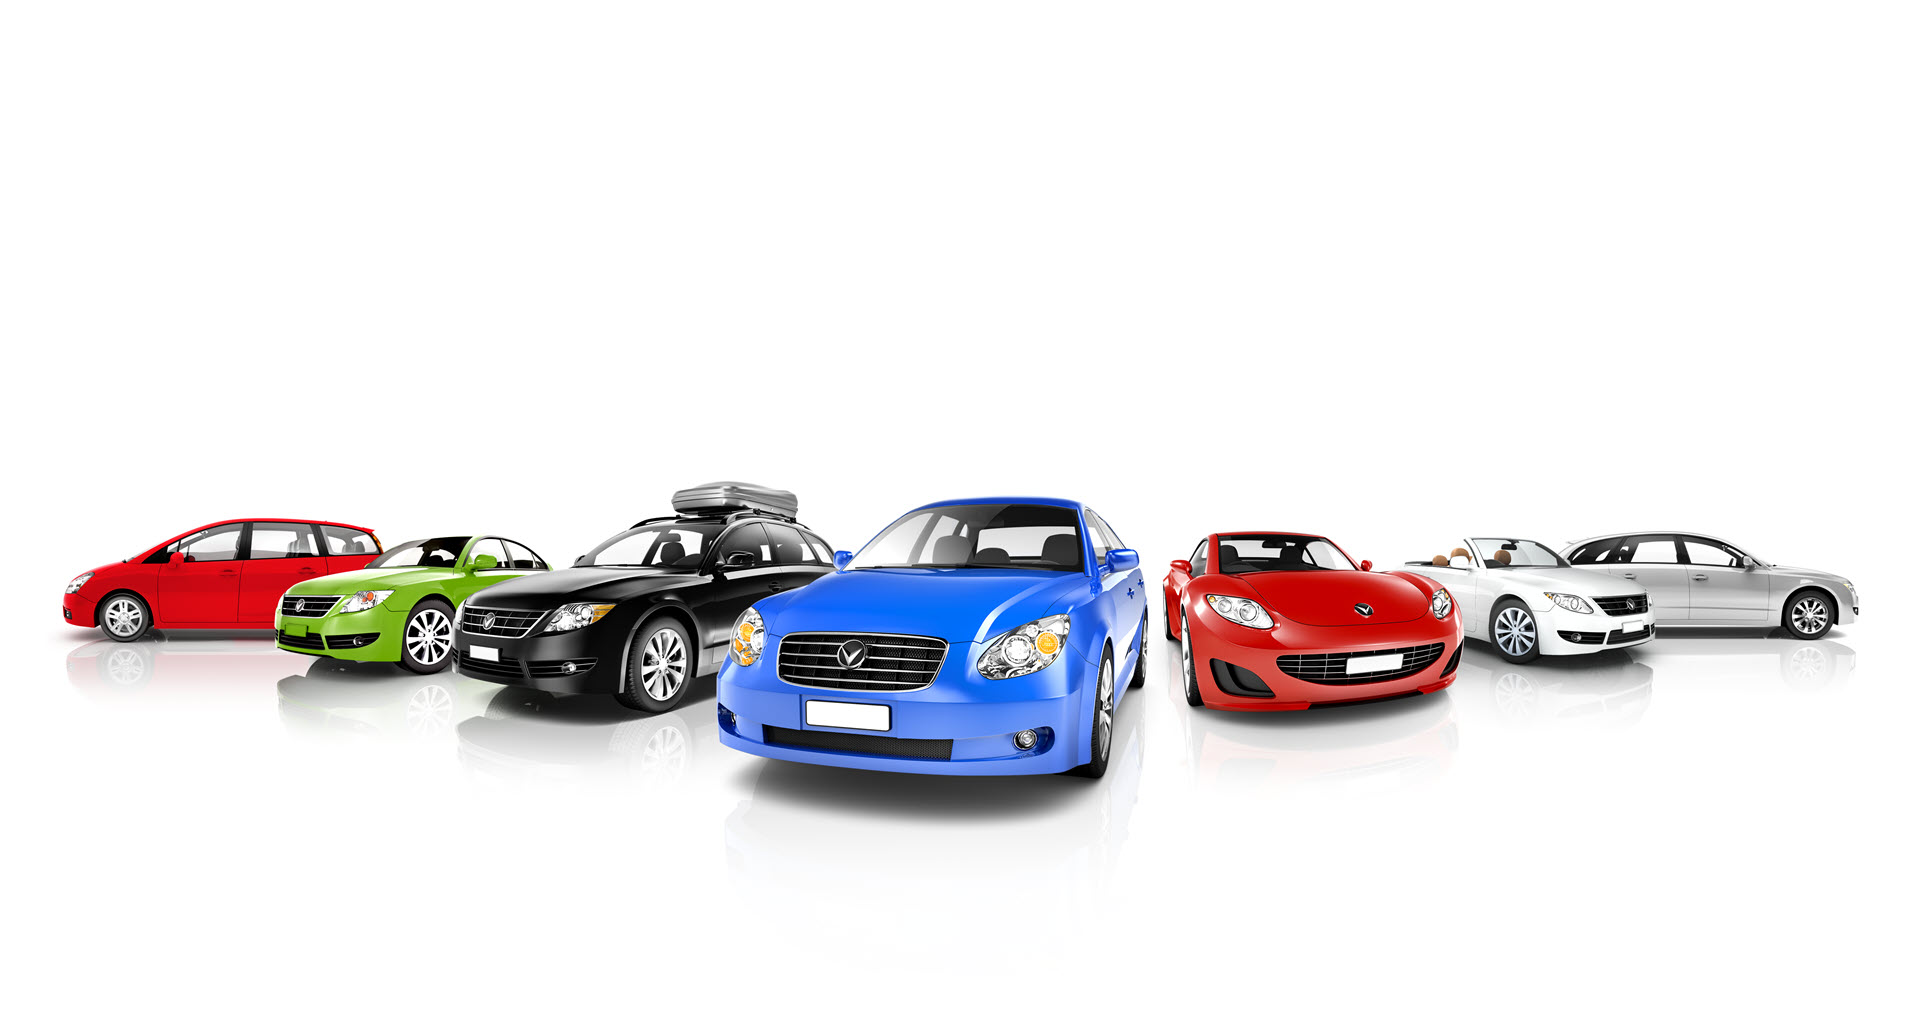 Green Vehicles For Sale